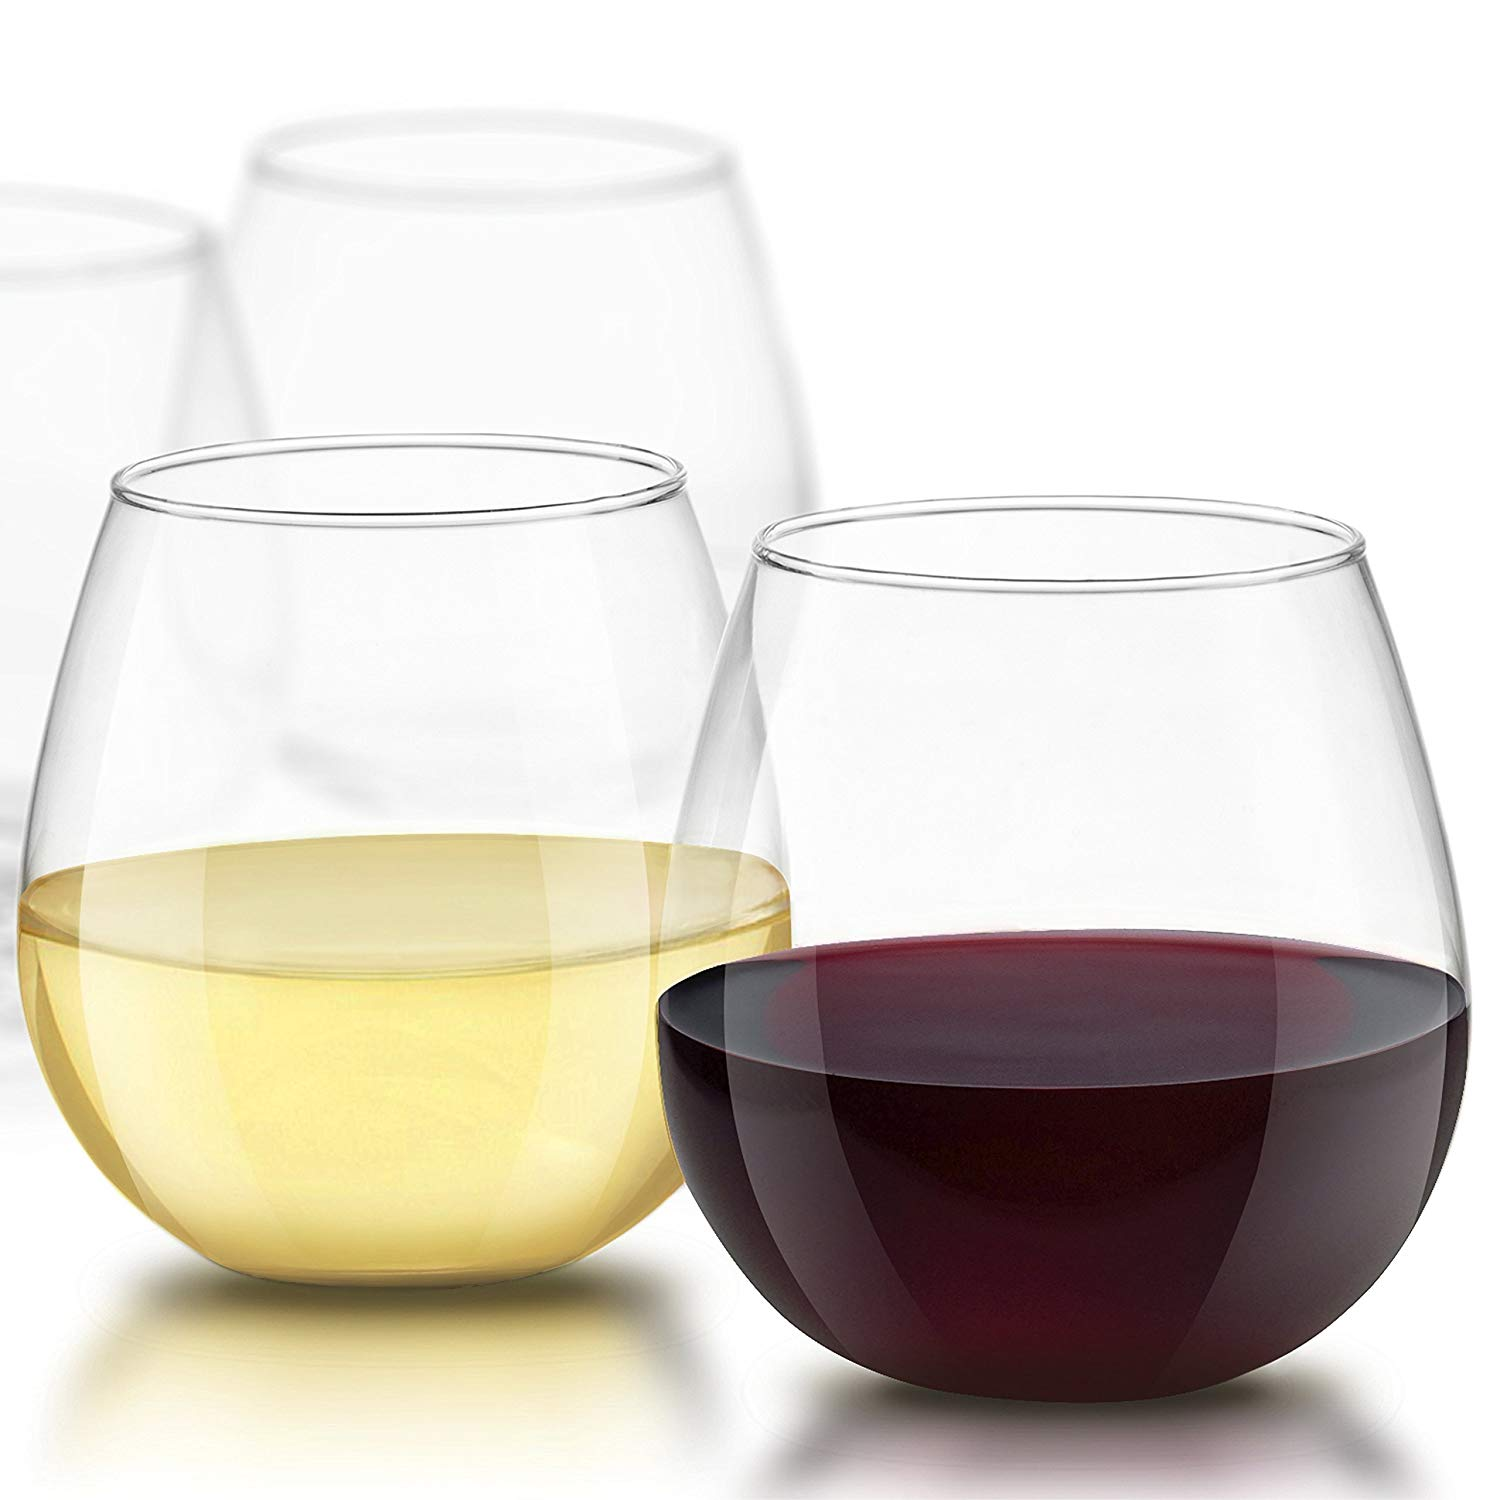 JoyJolt Spirits Stemless Wine Glasses 15-oz, Set Of 4